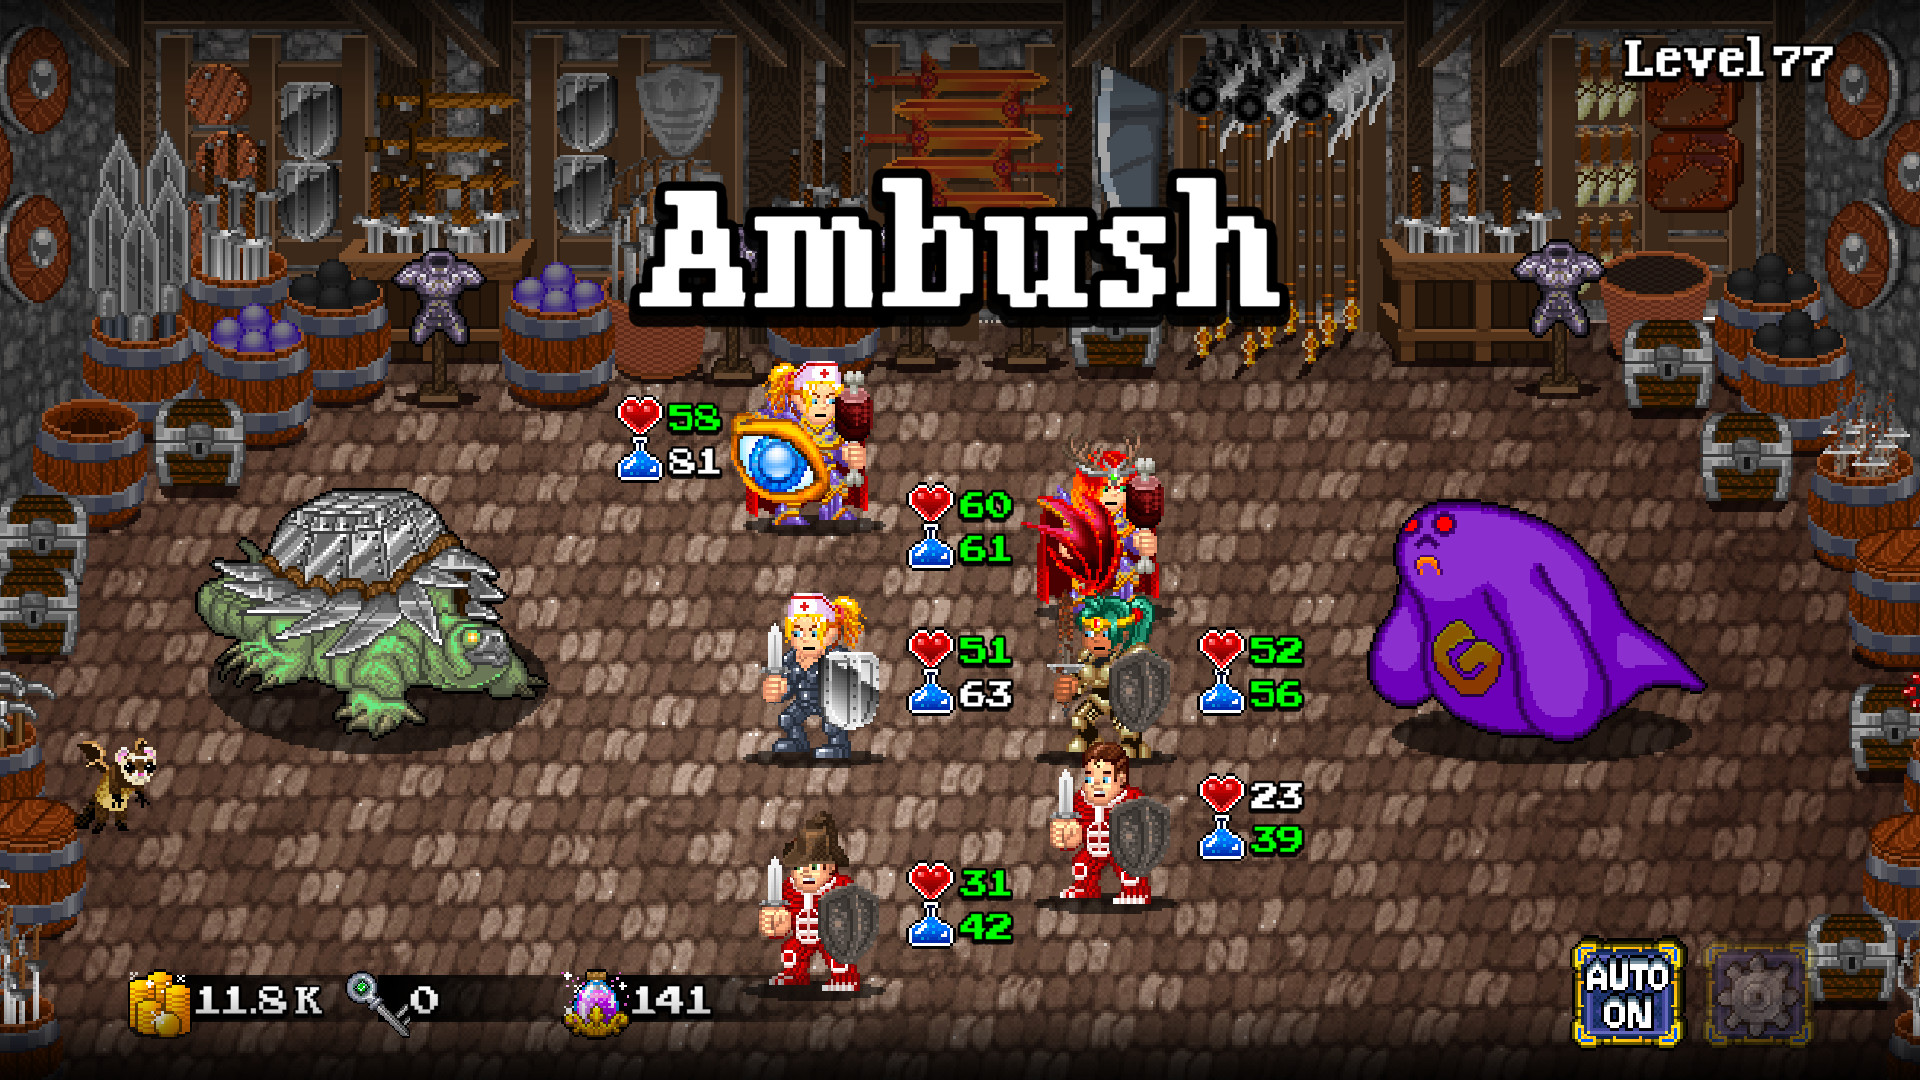 Claim Soda Dungeon 2 for free